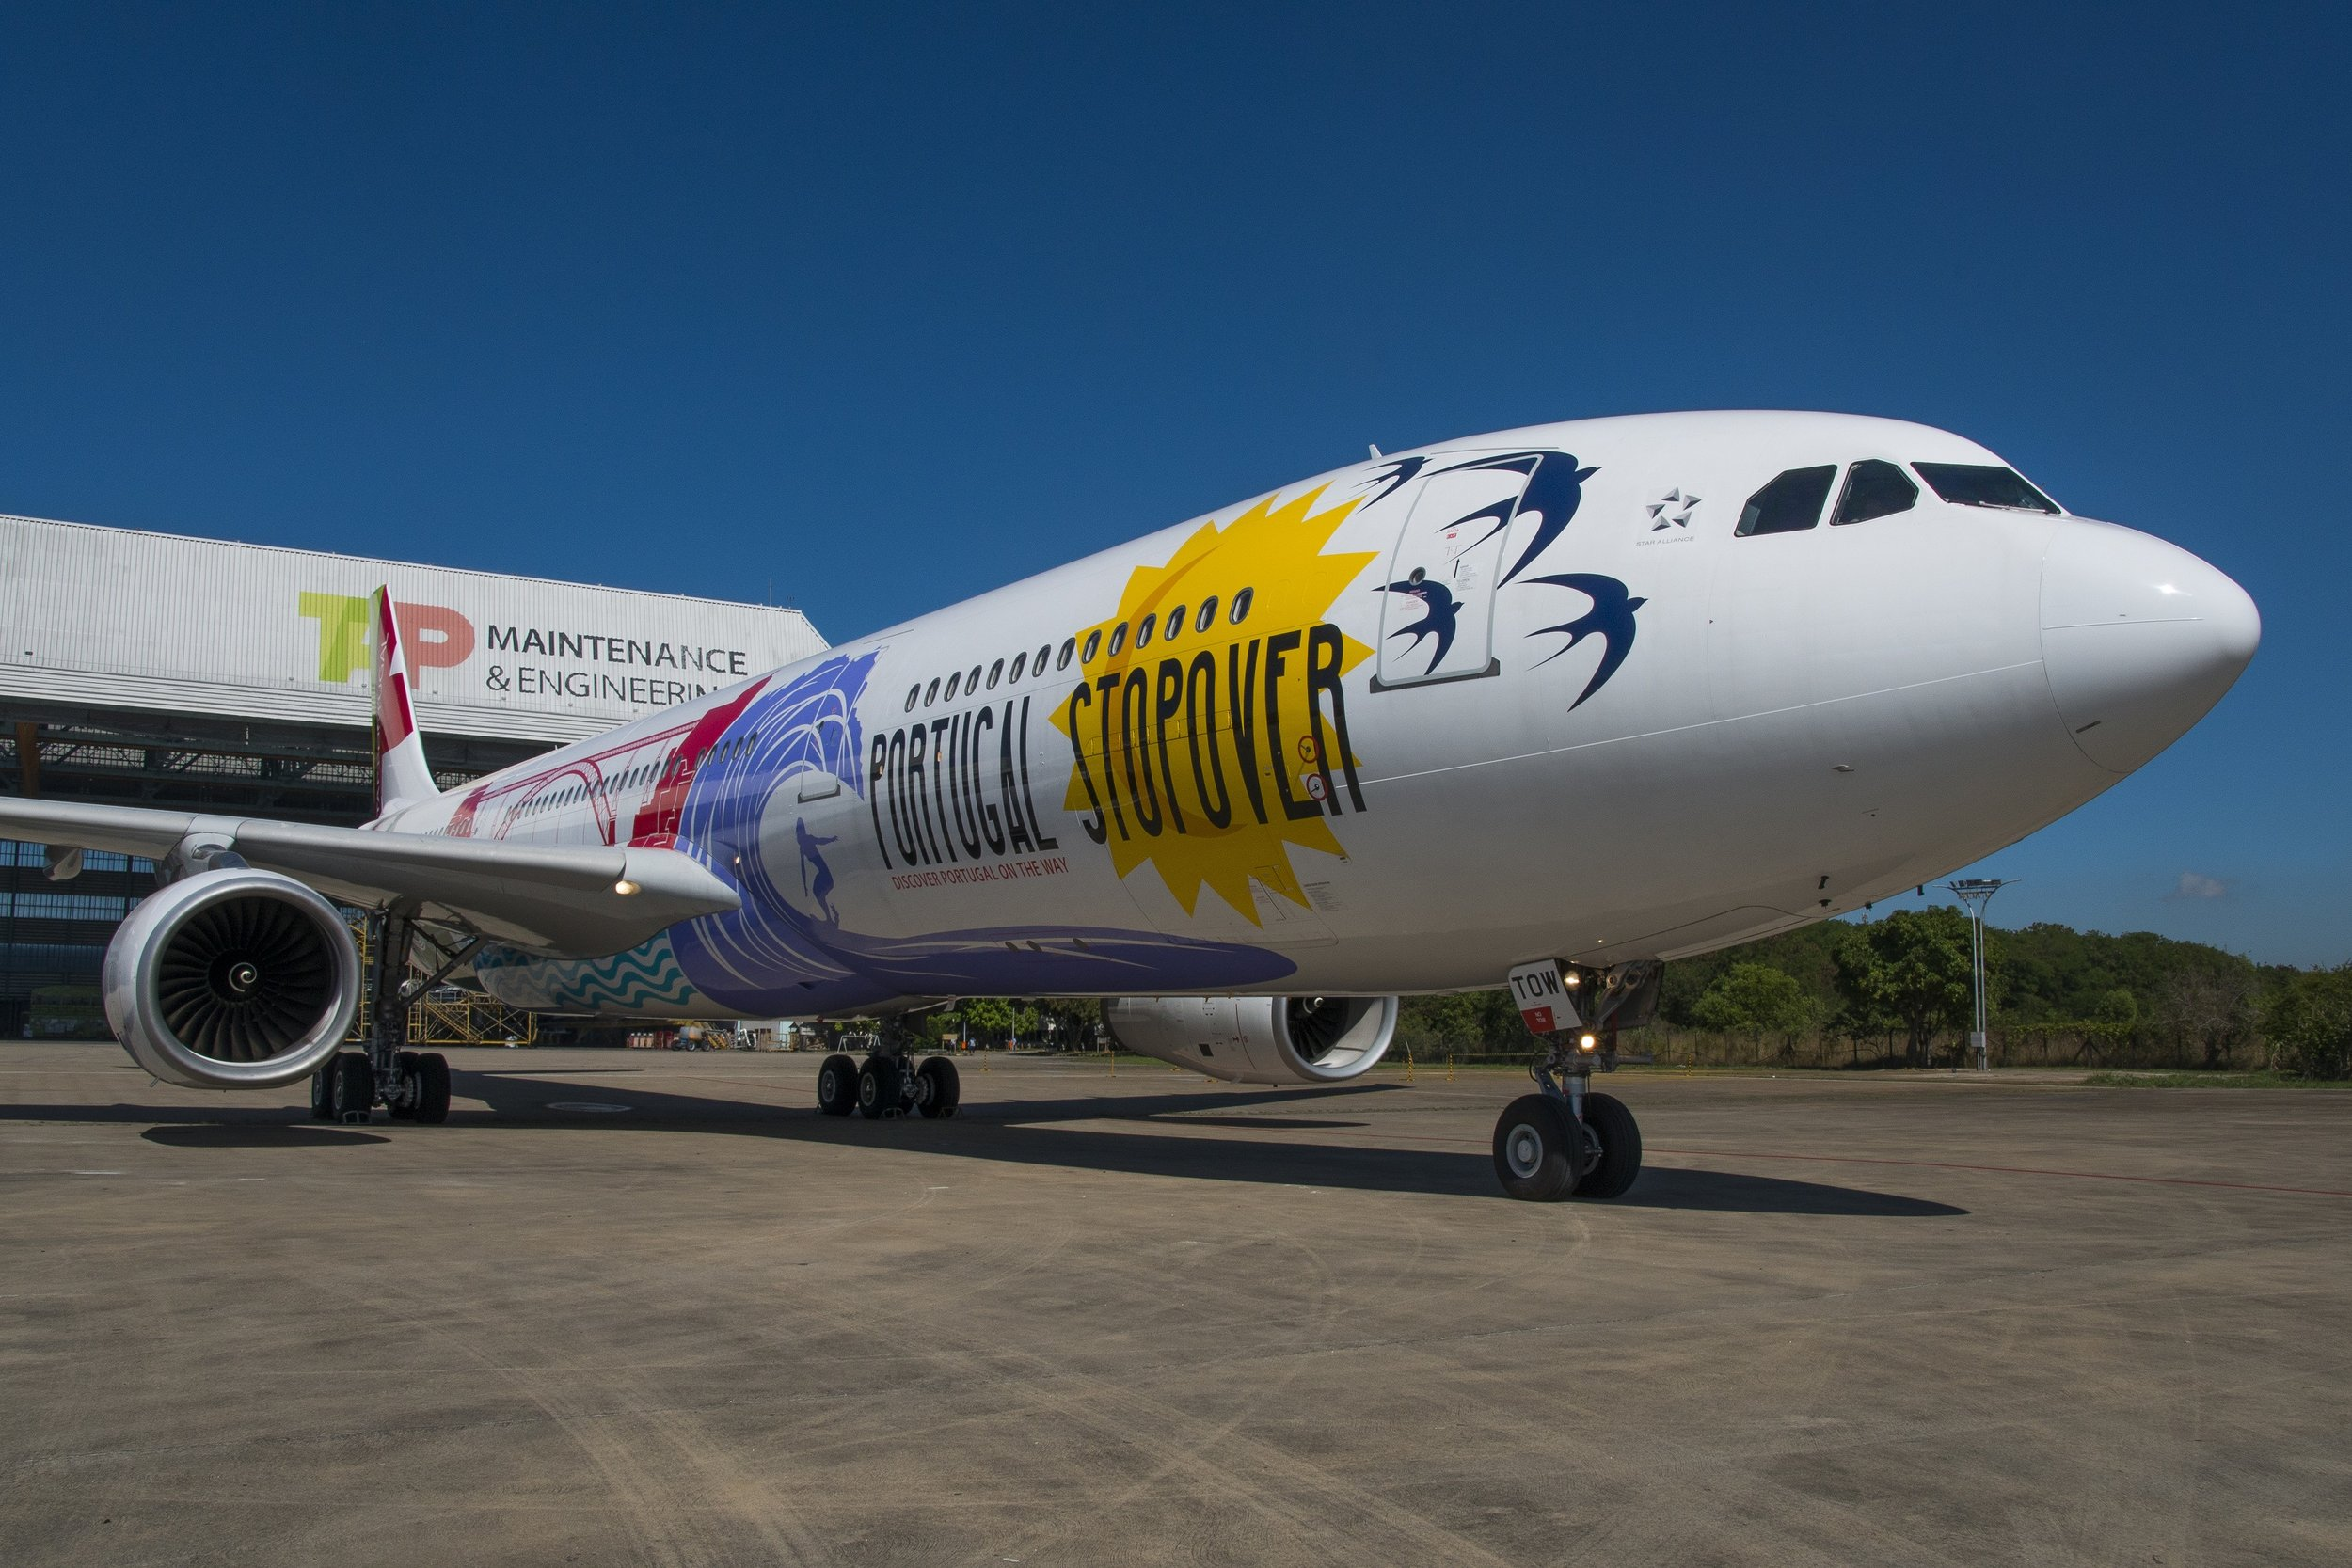 TAP launches new special livery: Portugal Stopover — Allplane